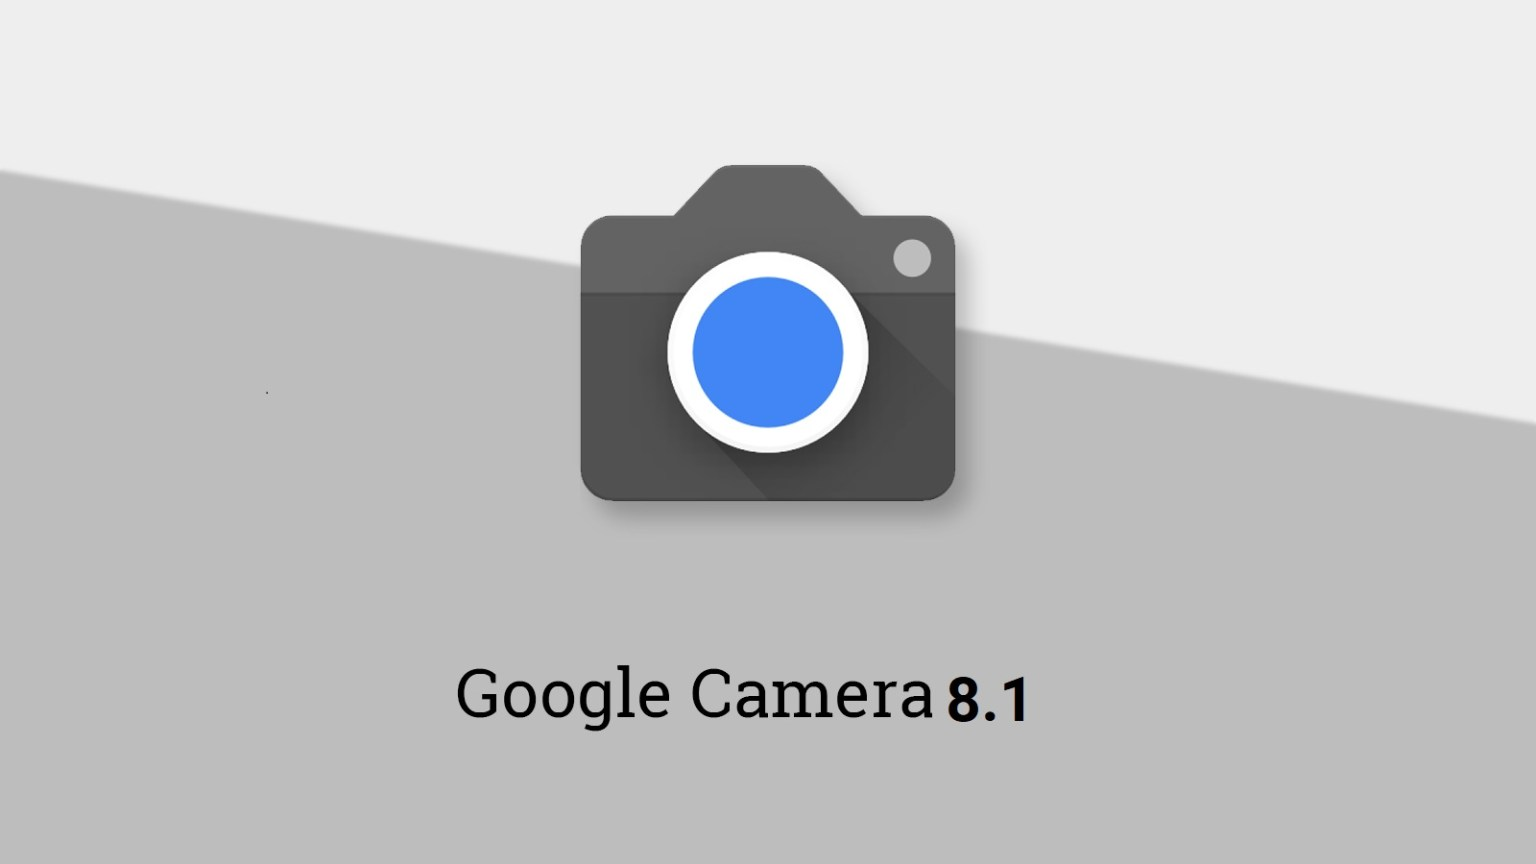 Download latest Google Camera APK v8.1.101